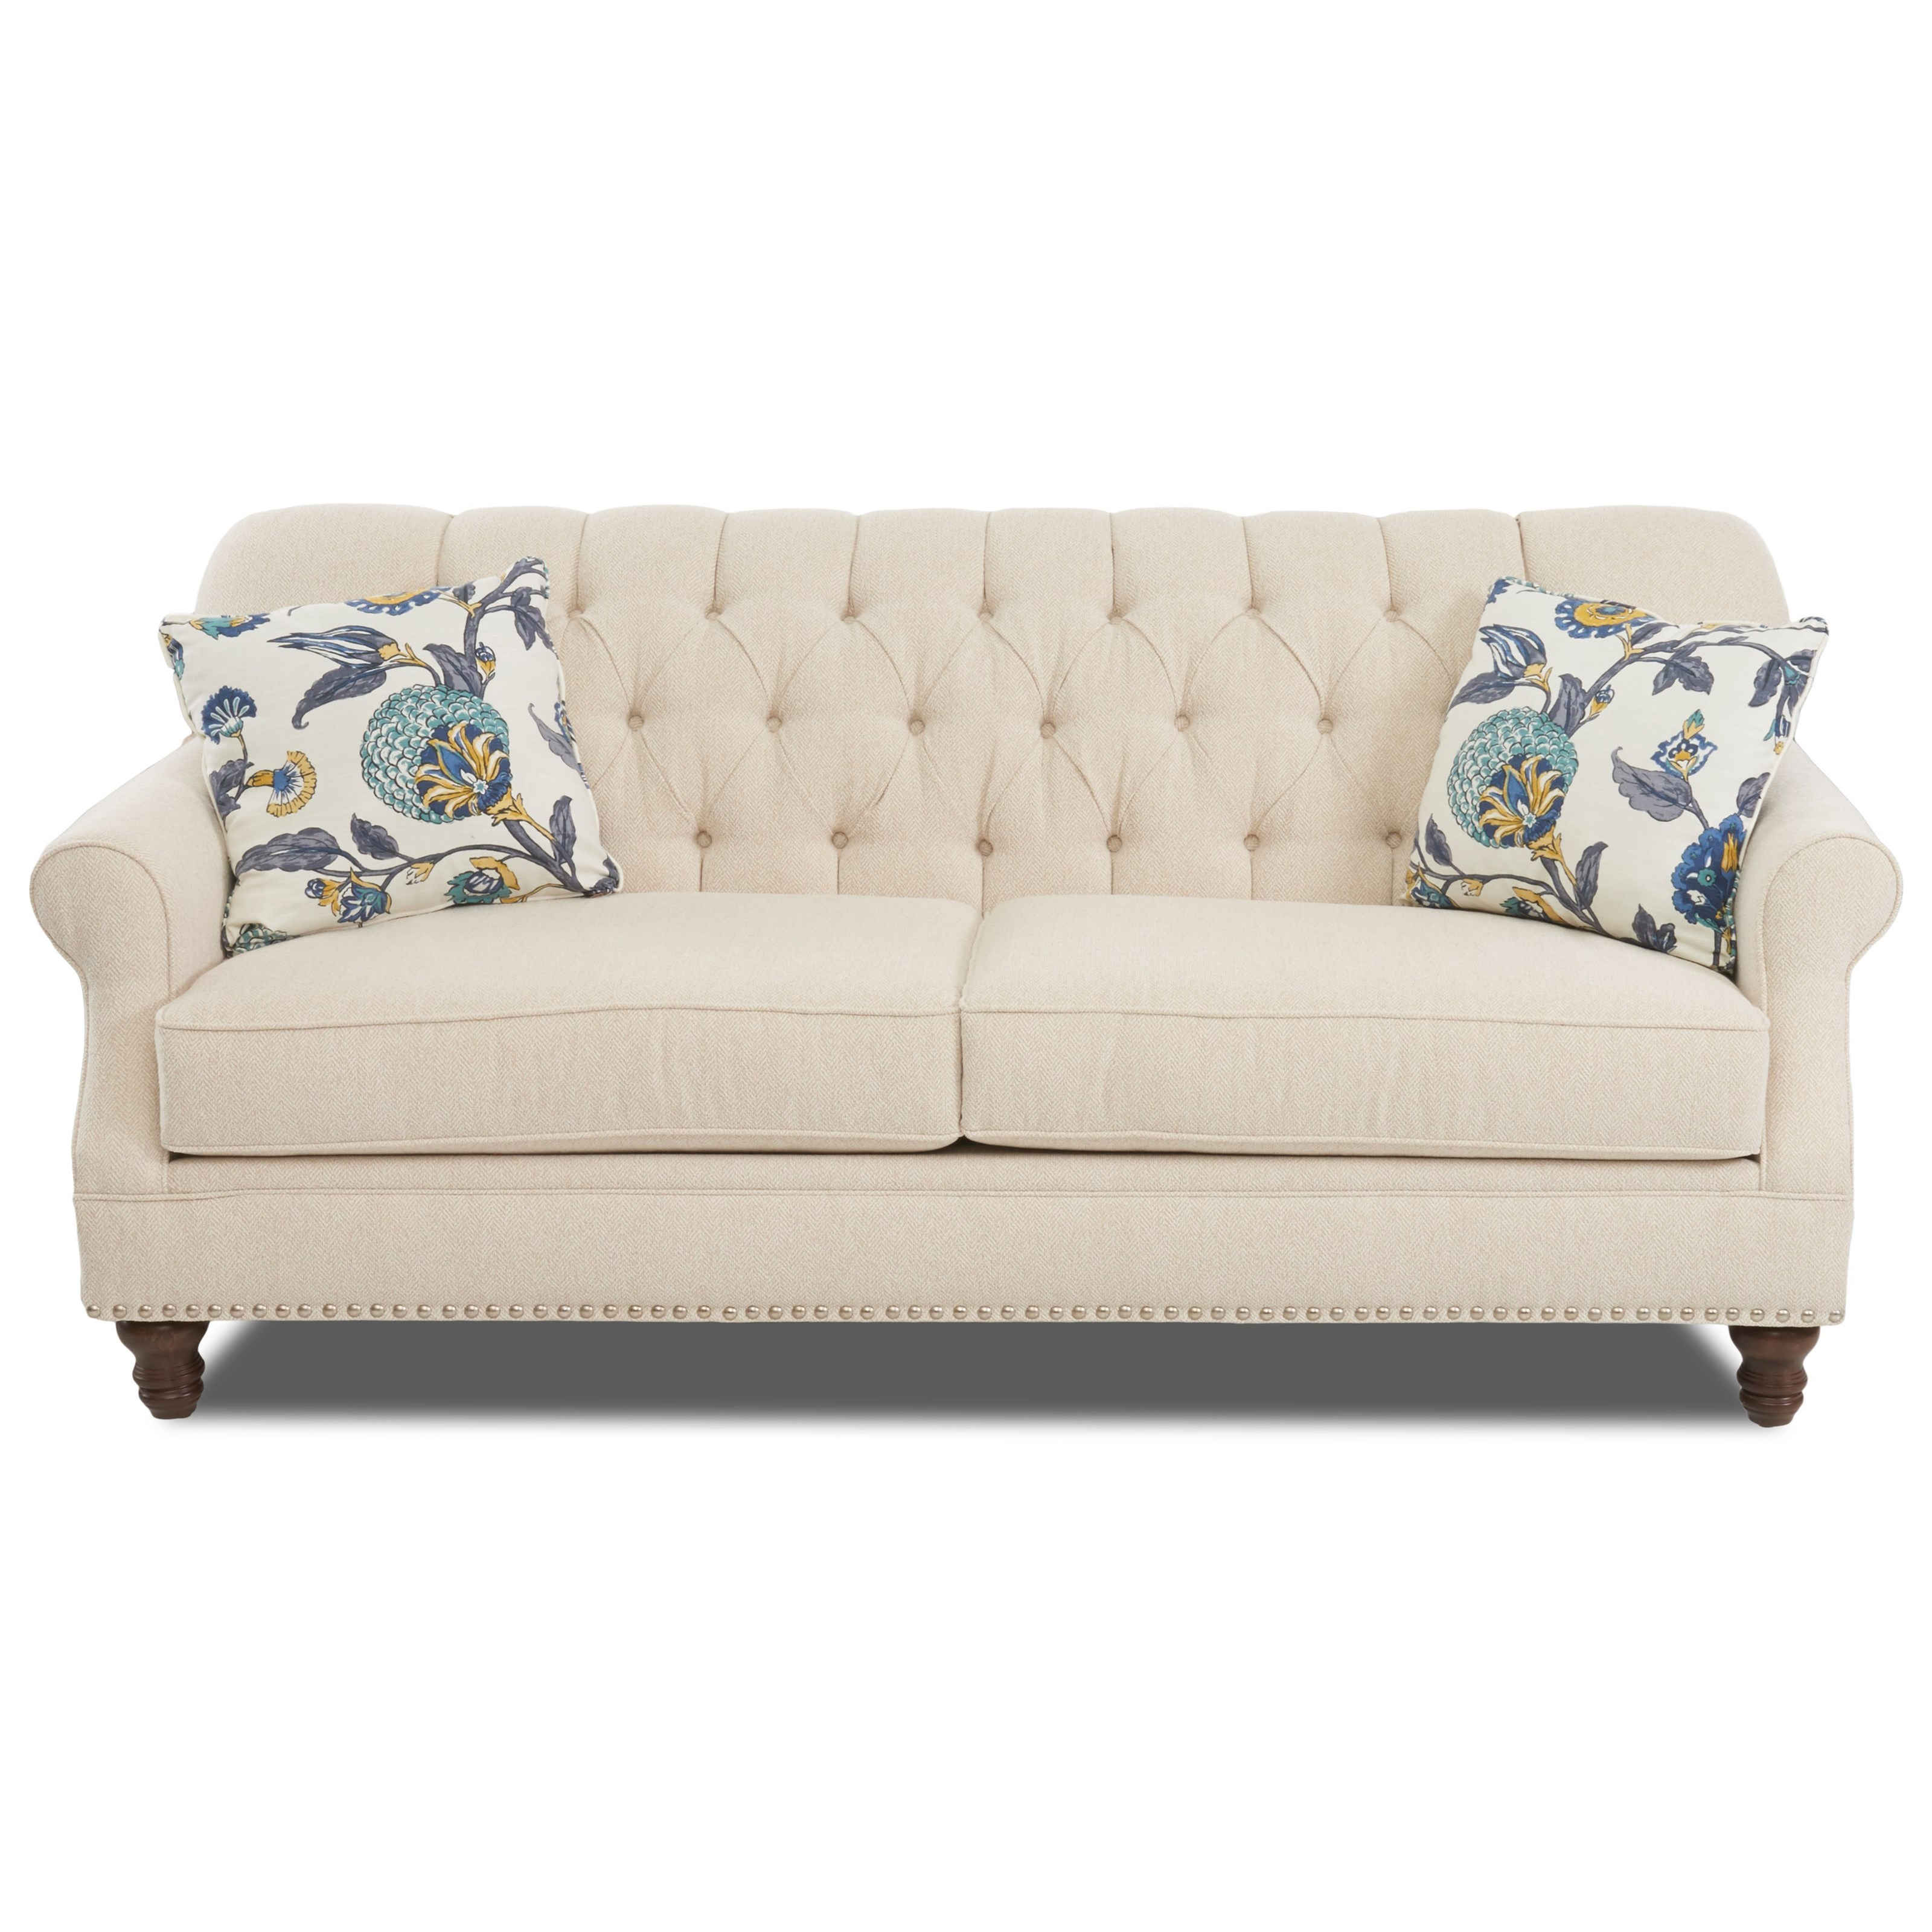 Klaussner burbank traditional tufted apartment size sofa with nailheads wayside furniture sofas - Apartment size sectional sofa ...